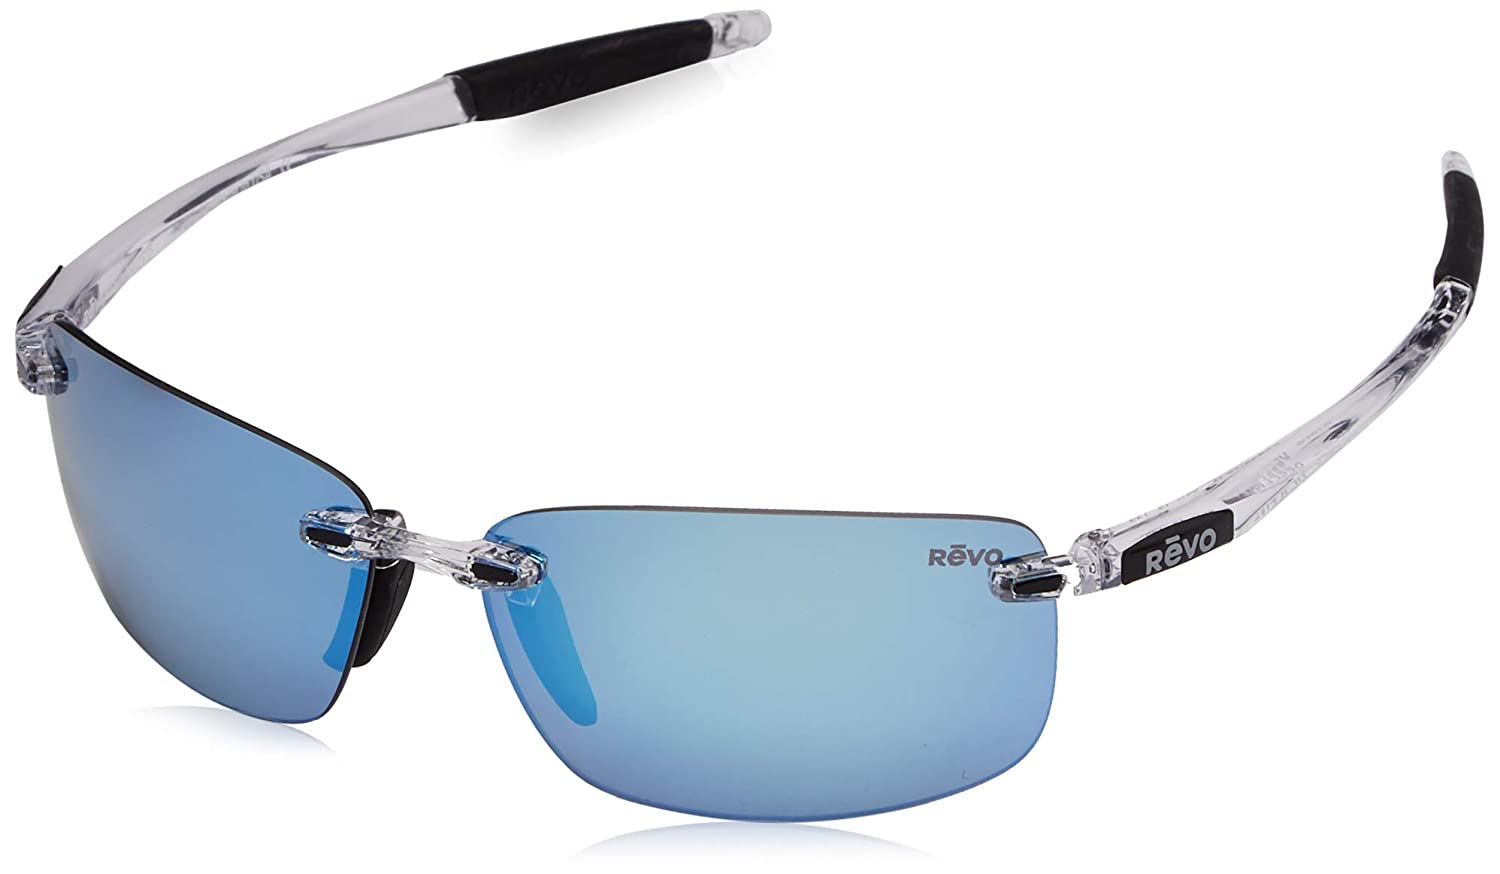 57b2f8450aa Revo RE4059-09BL RE4059 Descend N Crystal - Blue Water Polarized Sunglasses   Amazon.co.uk  Clothing